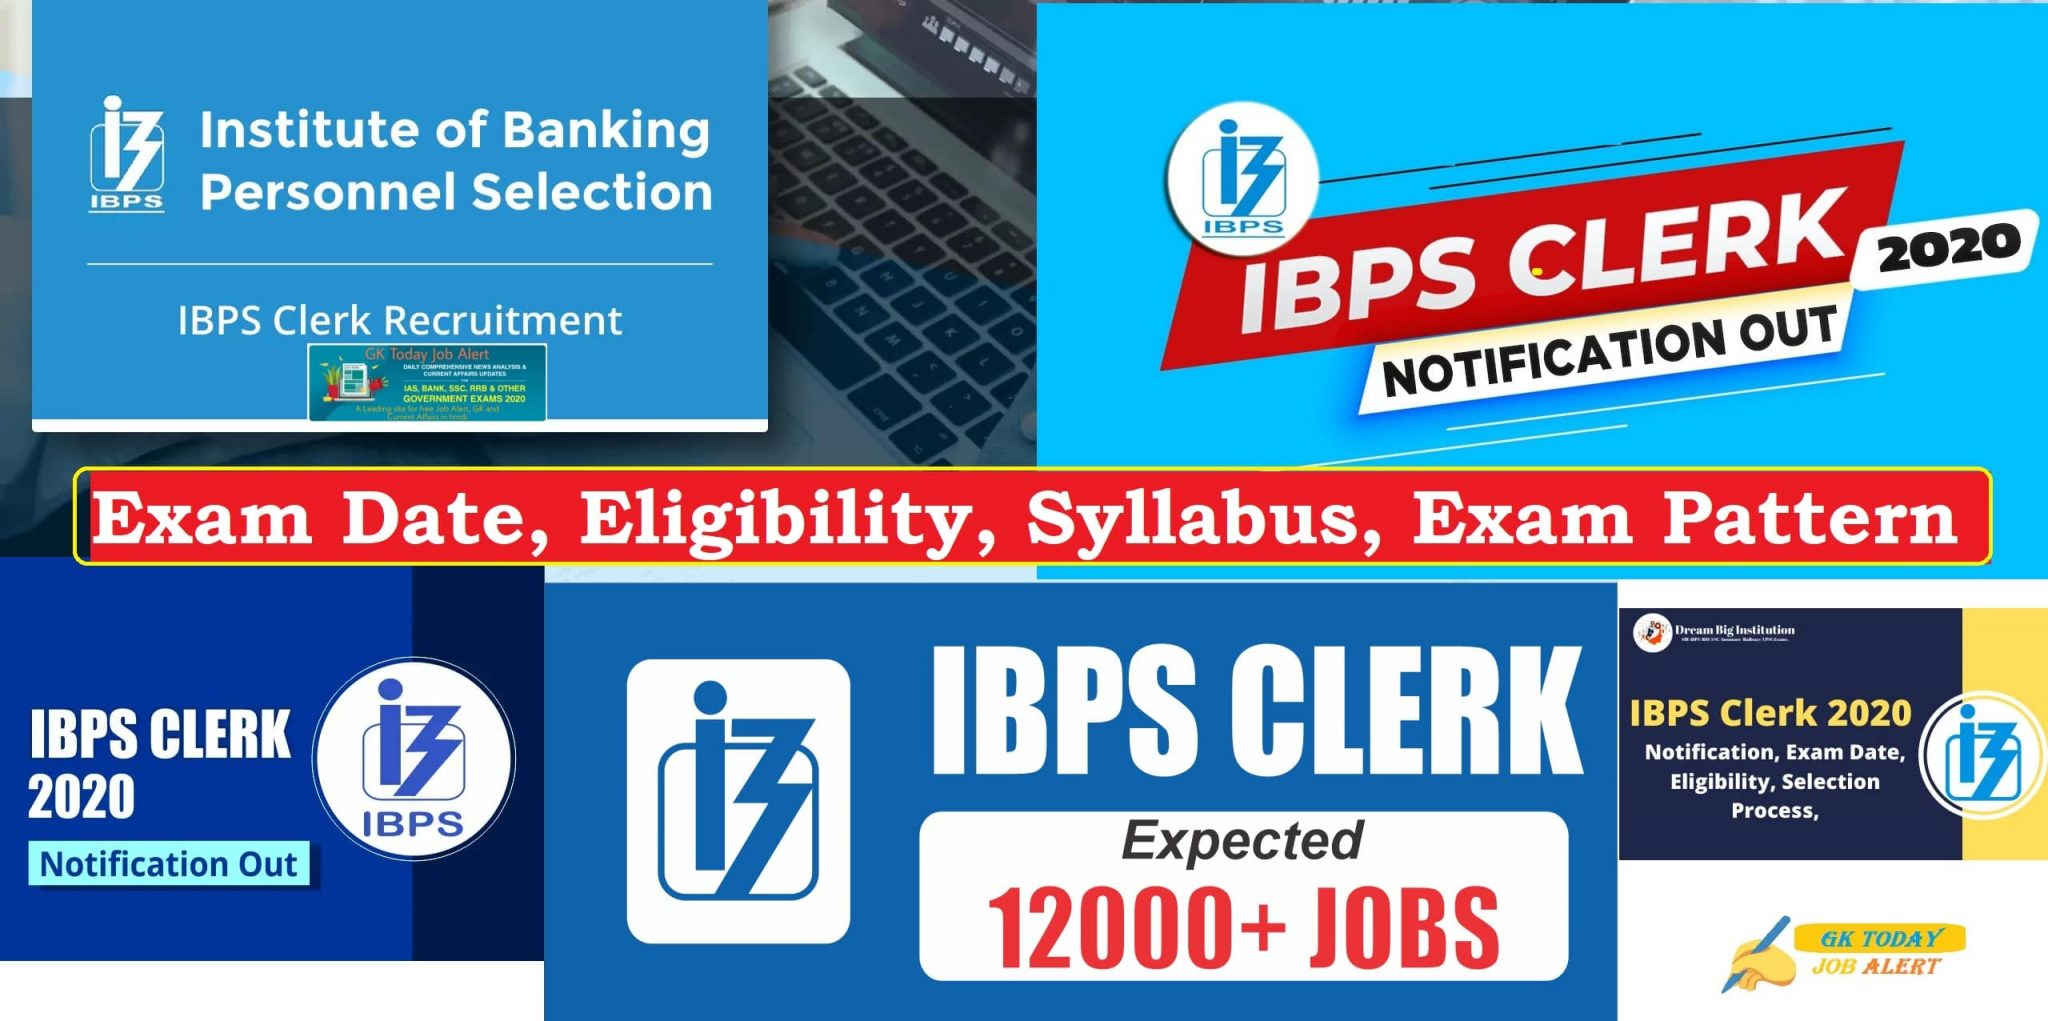 IBPS Clerk Notification 2020 - Clerk X 2557 Vacancies Re-open Online Form | Check Exam Date, Eligibility, Syllabus, Exam pattern (last date 06-11-20)